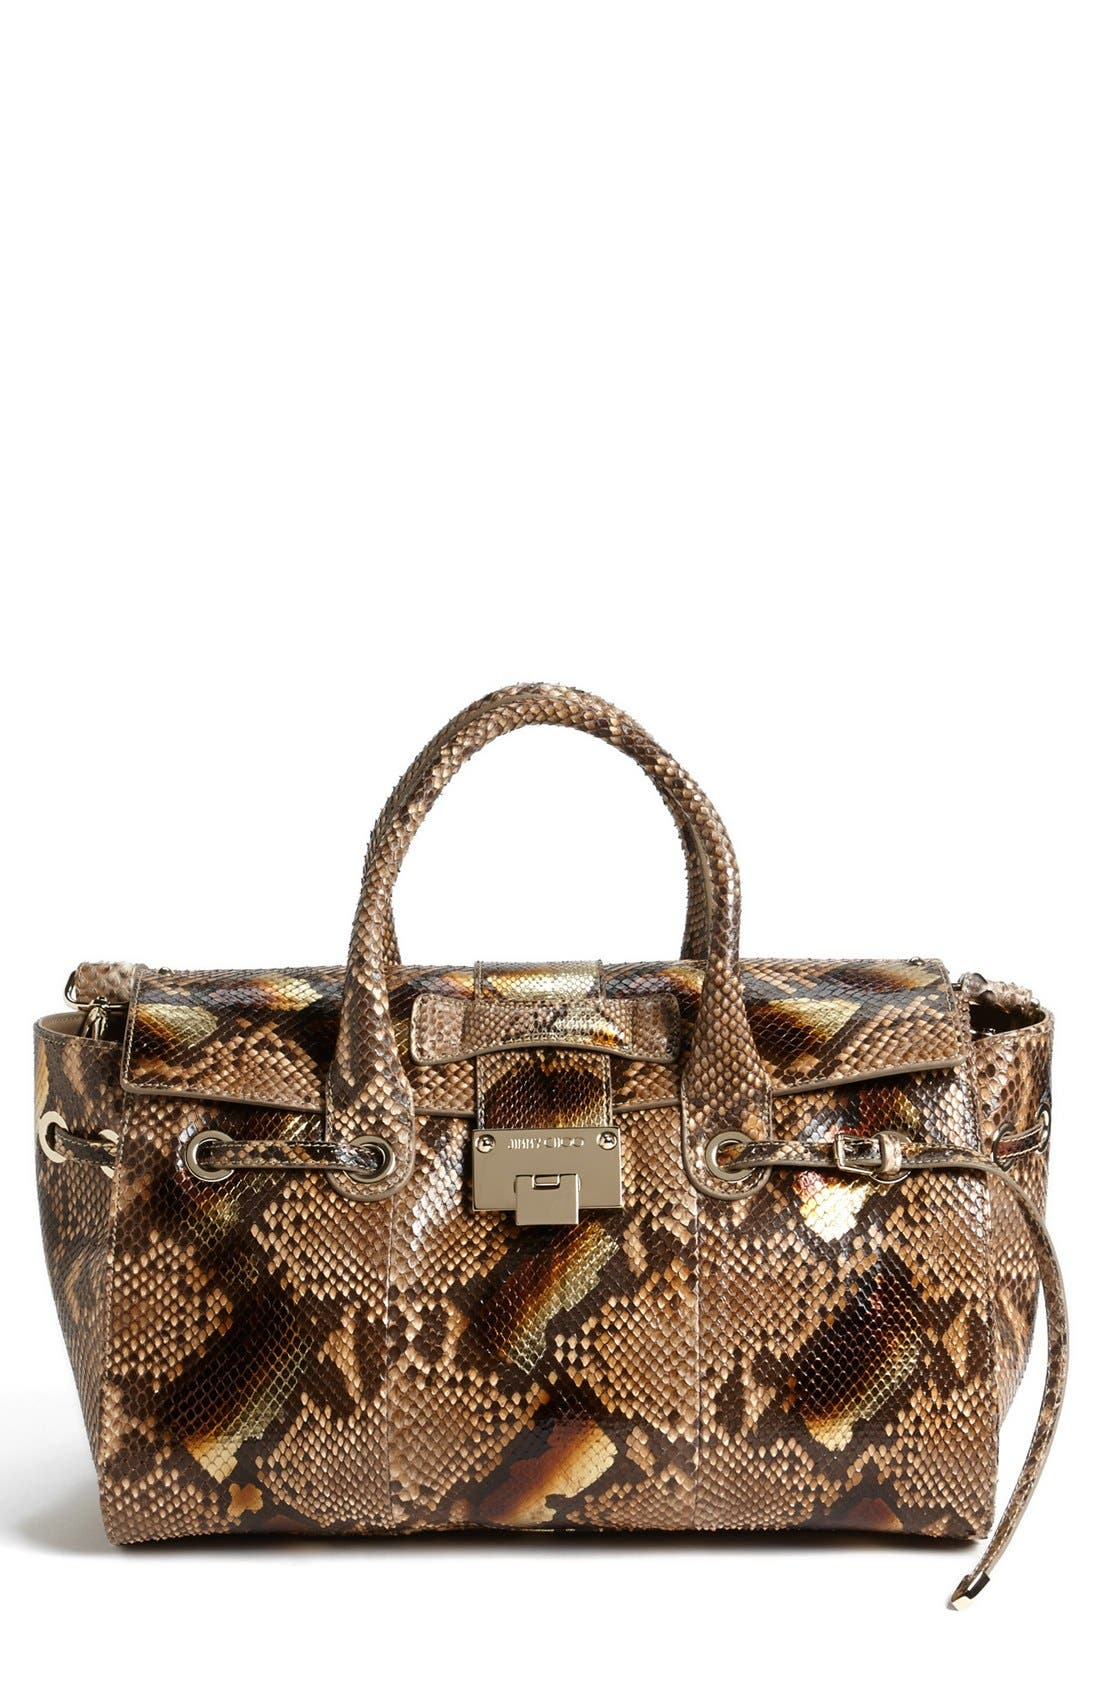 Main Image - Jimmy Choo 'Rosa' Metallic Dégradé Genuine Python Satchel